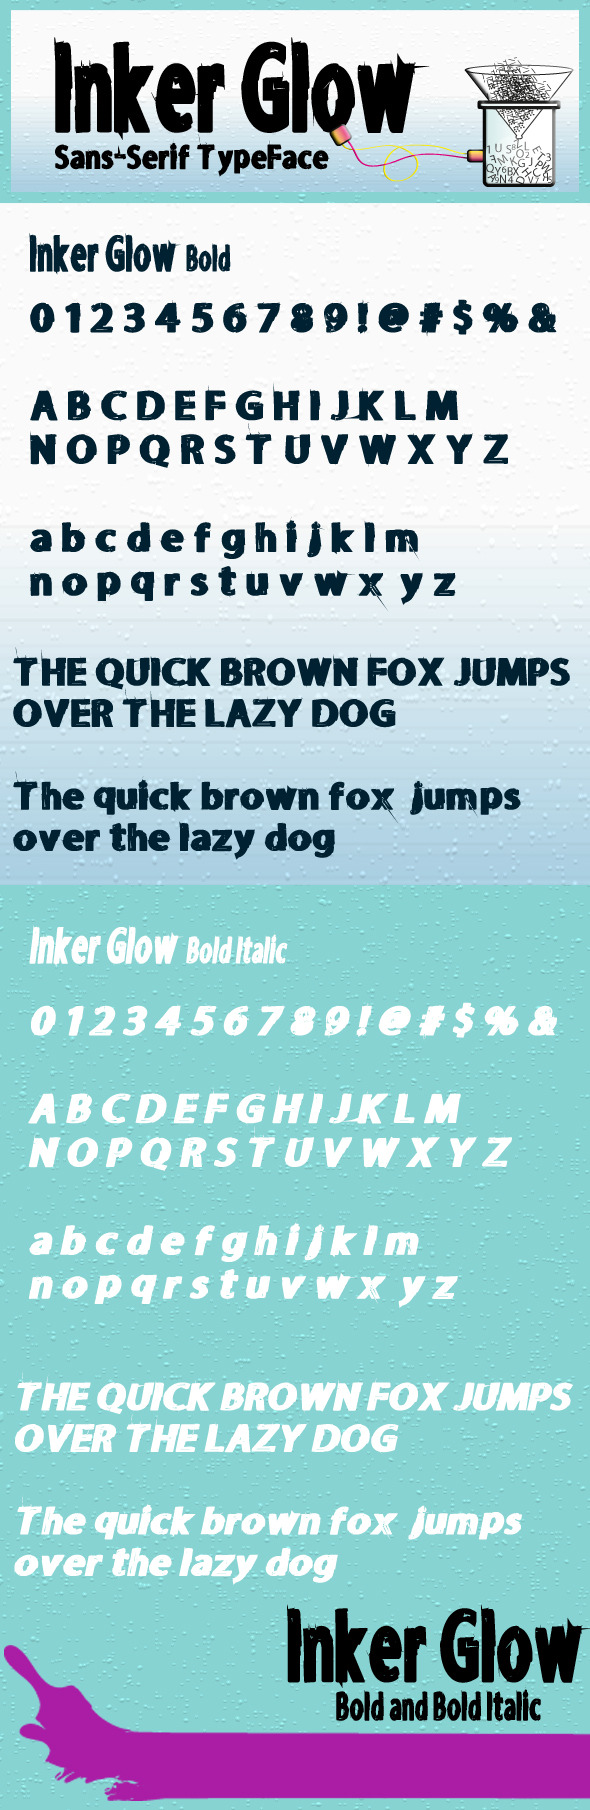 GraphicRiver Inker Glow Bold and Bold Italic 8535387